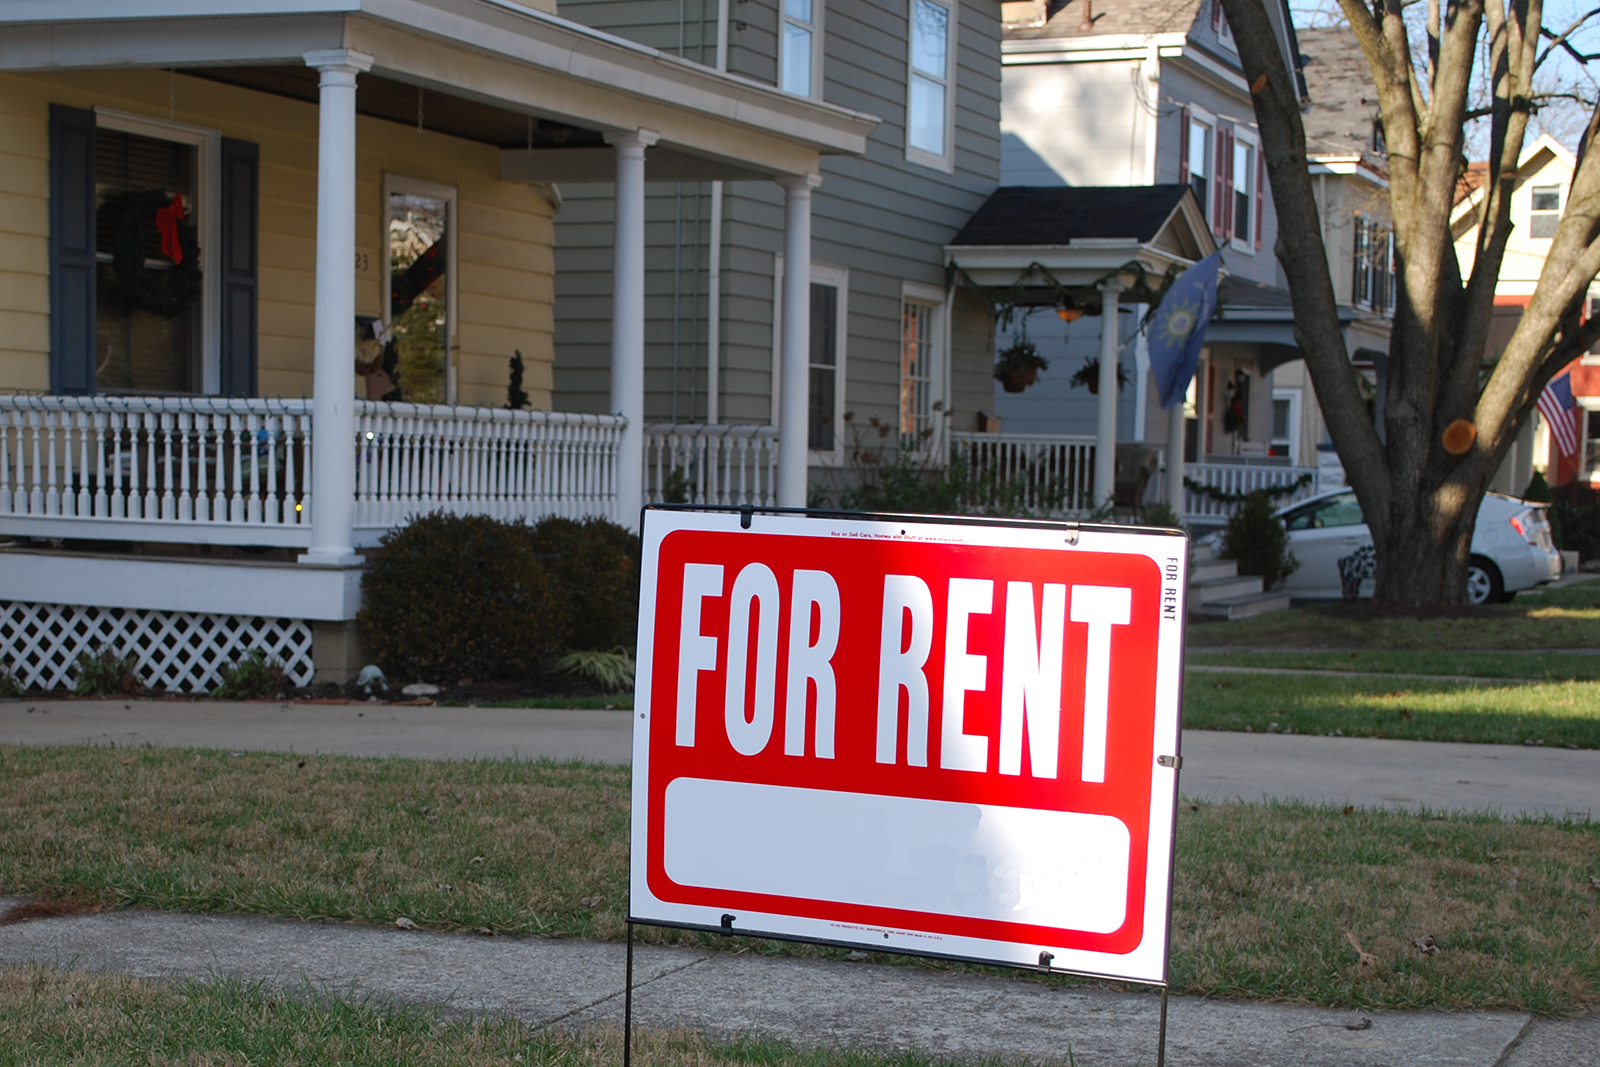 A for rent sign outside of a house